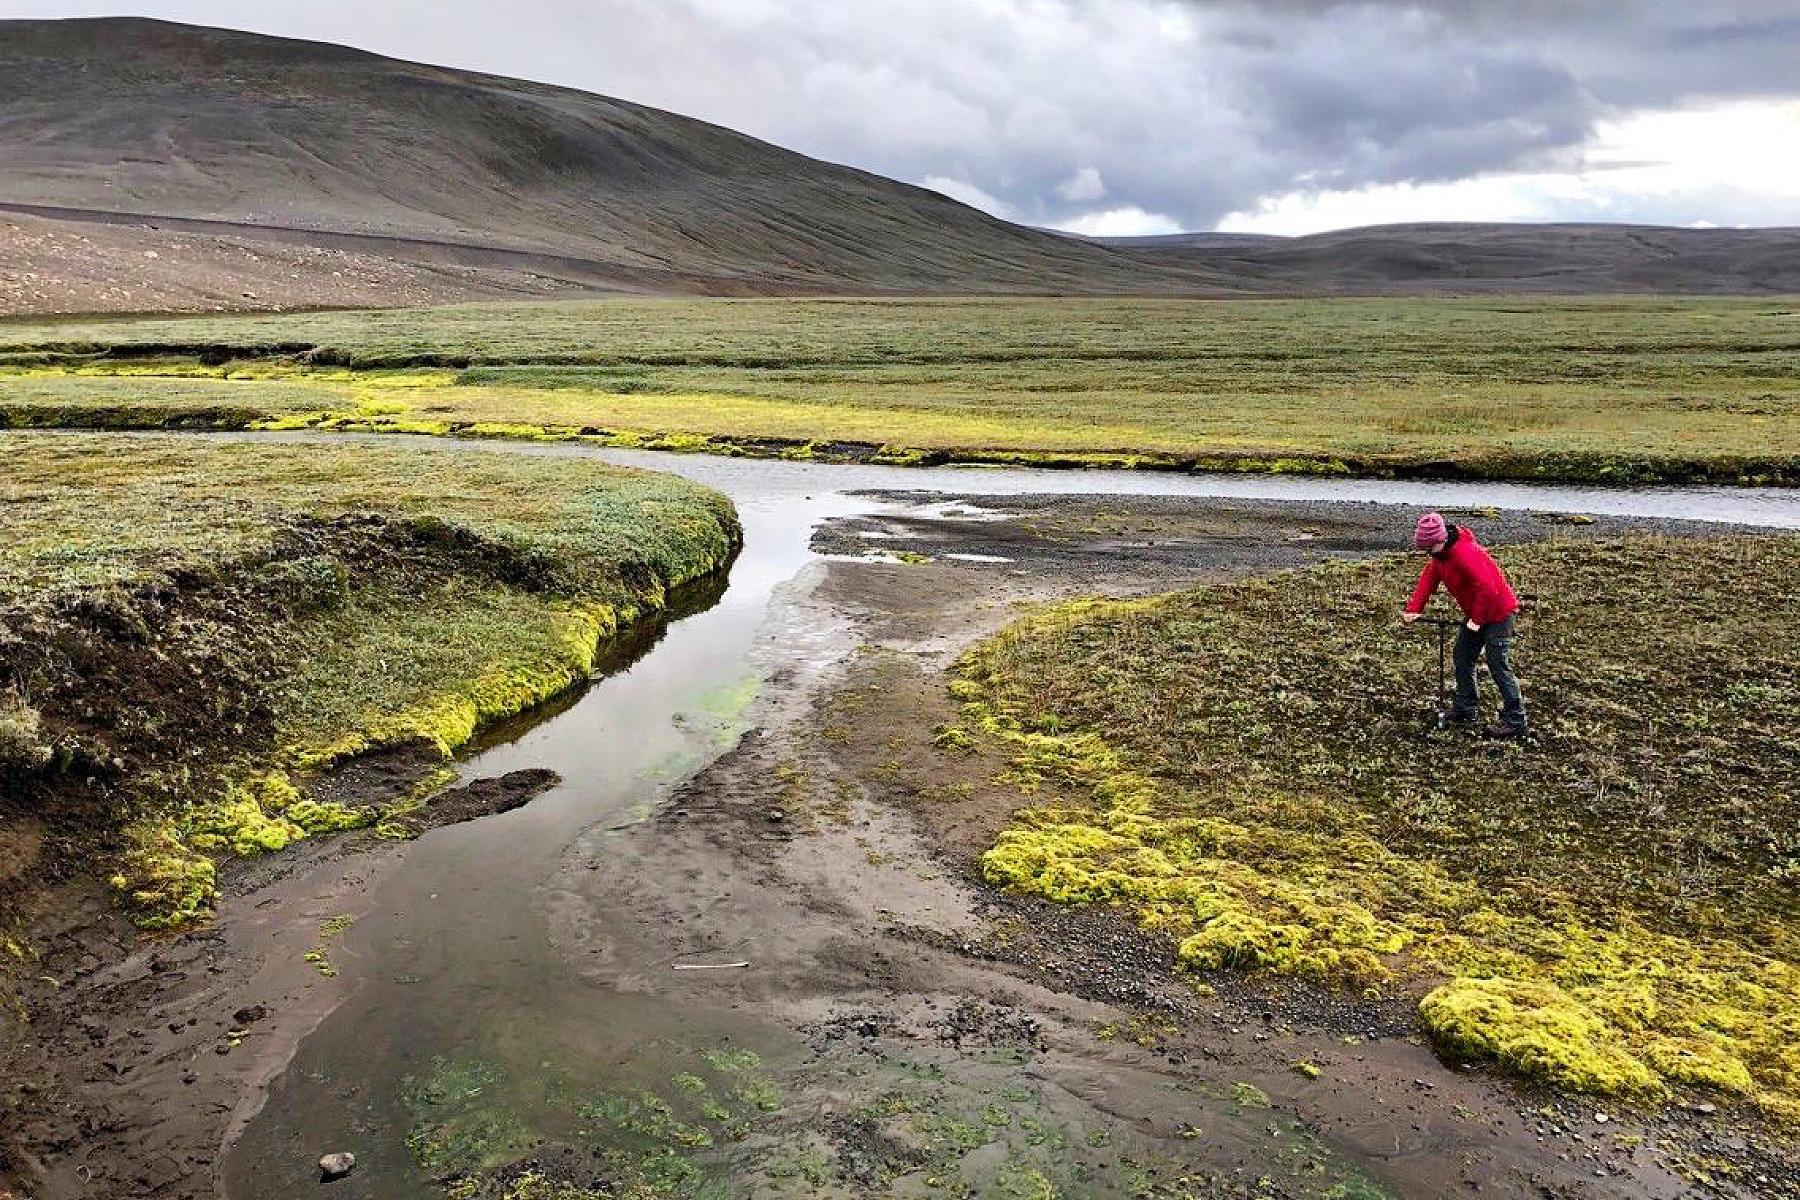 Rebecca Dzombak collects samples in Iceland.